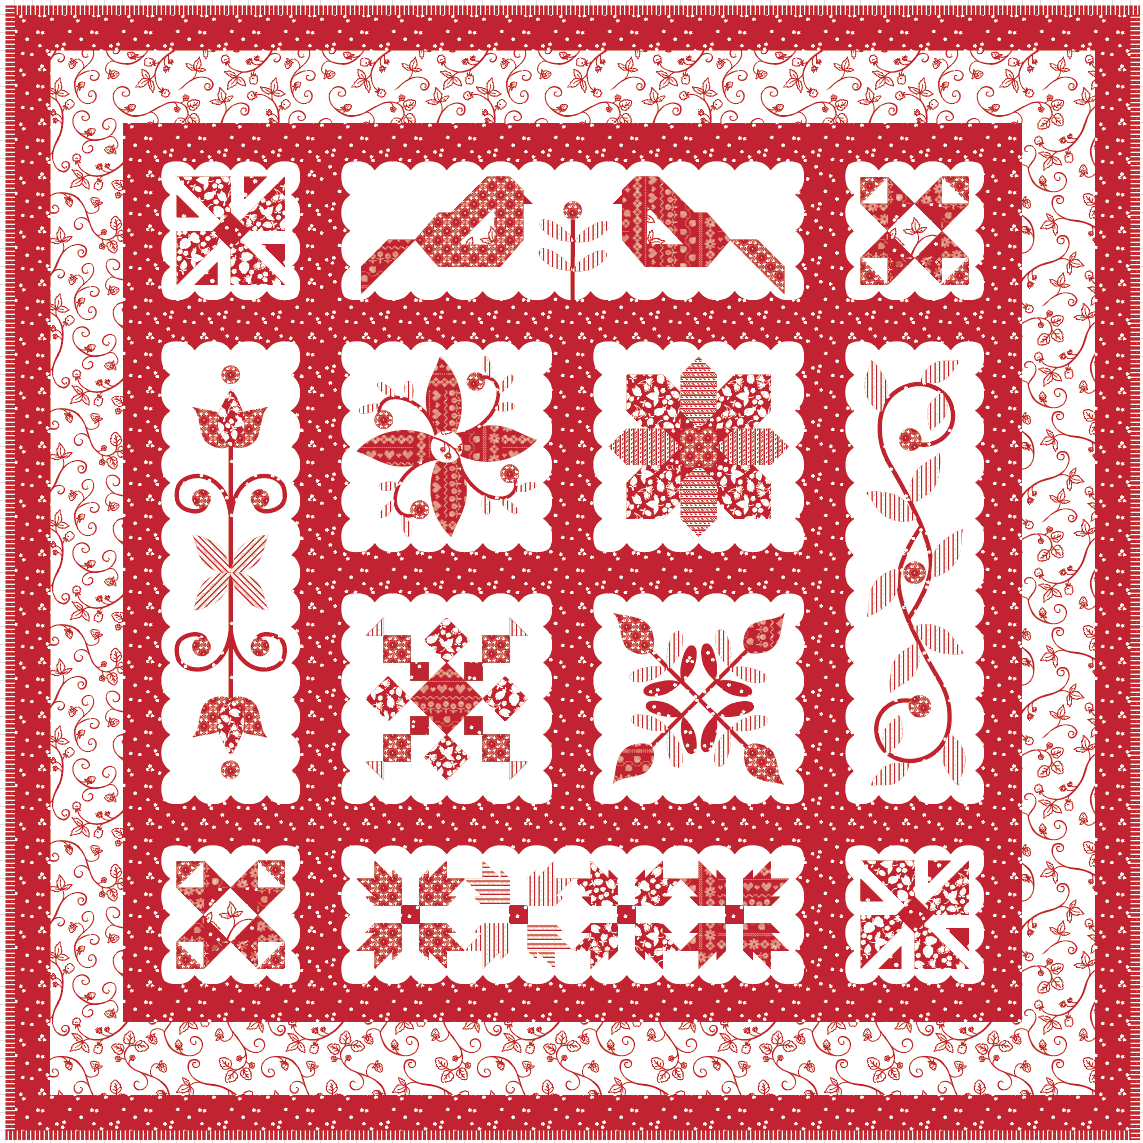 Swiss Miss Quilt Kit - 2 Colorways!